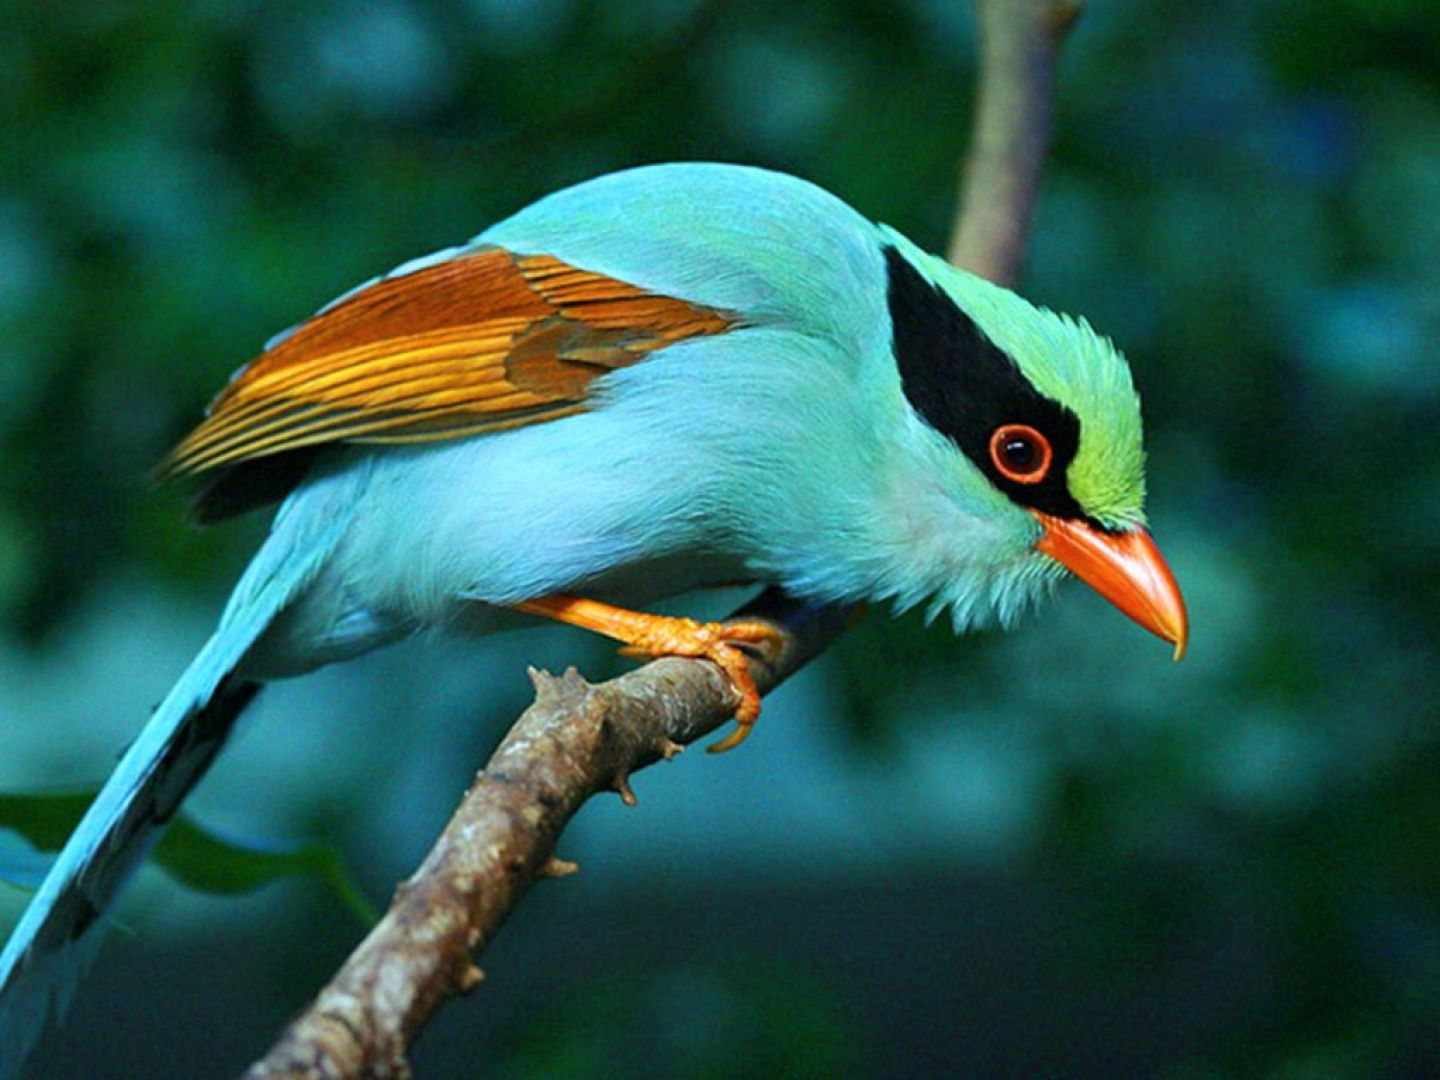 Hd Animal Wallpapers A Very Rare Bird Colorful Birds Birds